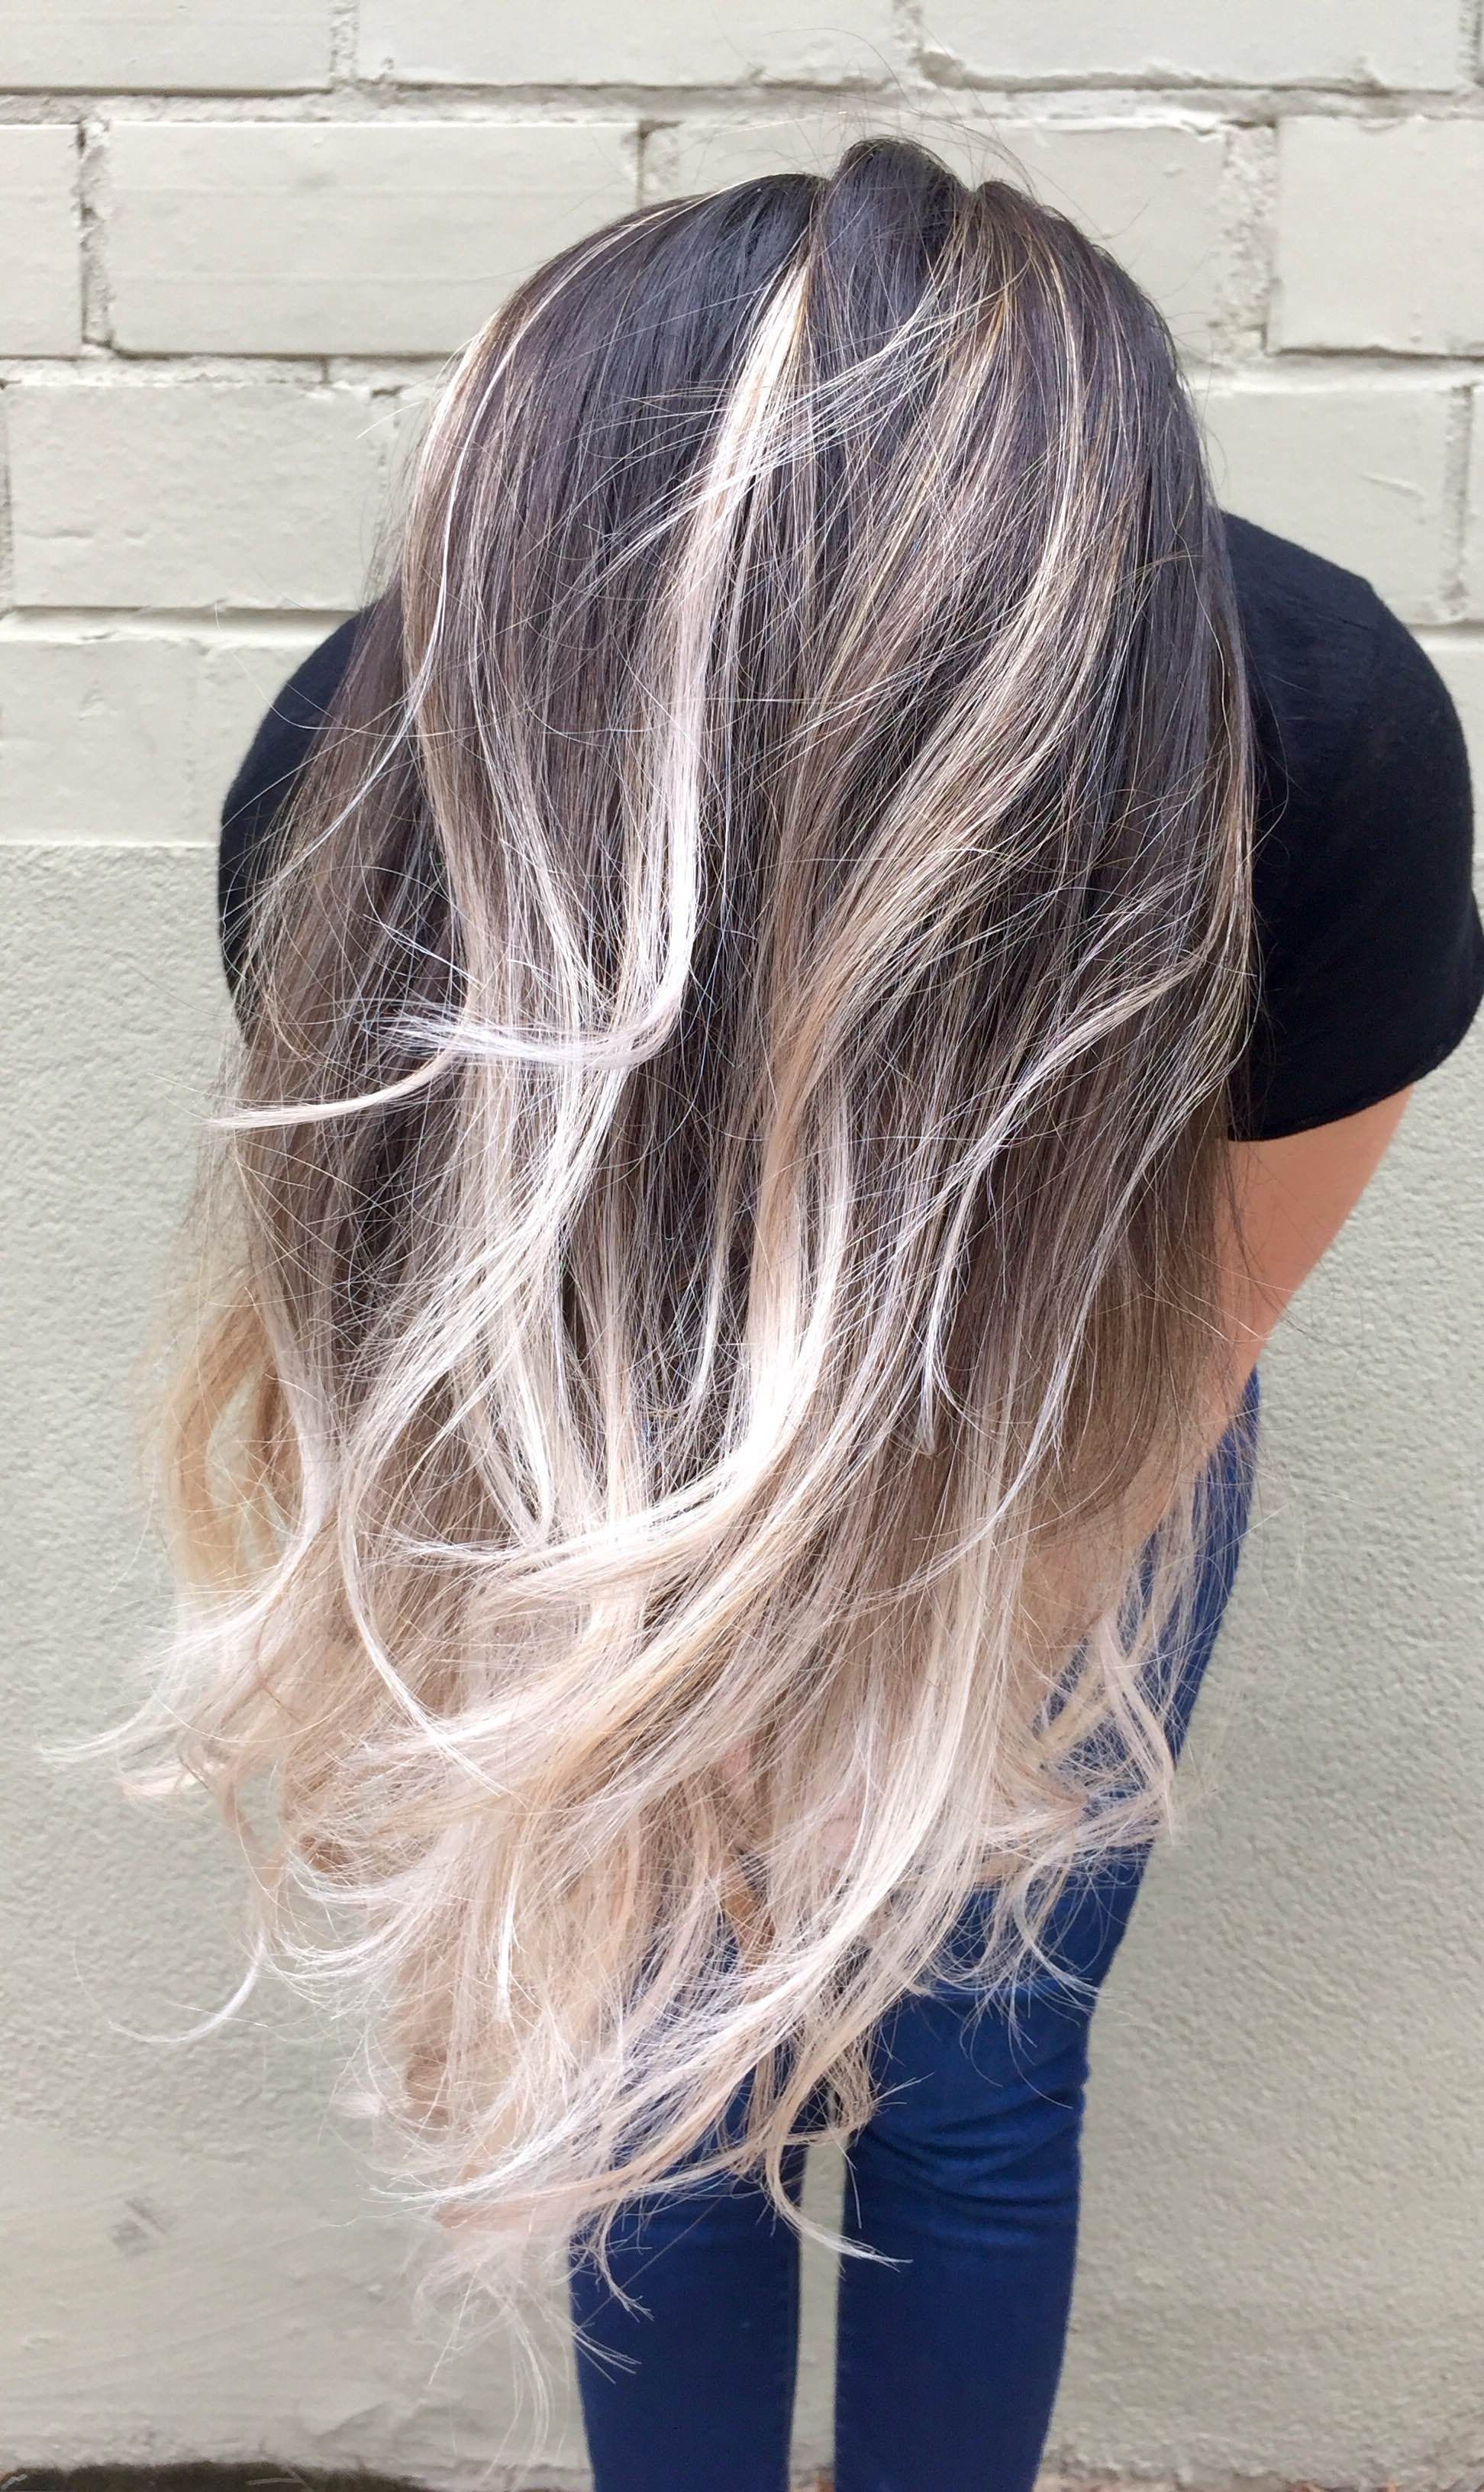 Famous Salty Beach Blonde Layers Hairstyles With Dark Brown To Silver Ashmegan @ Crown Beauty Bar Fayetteville (View 8 of 20)